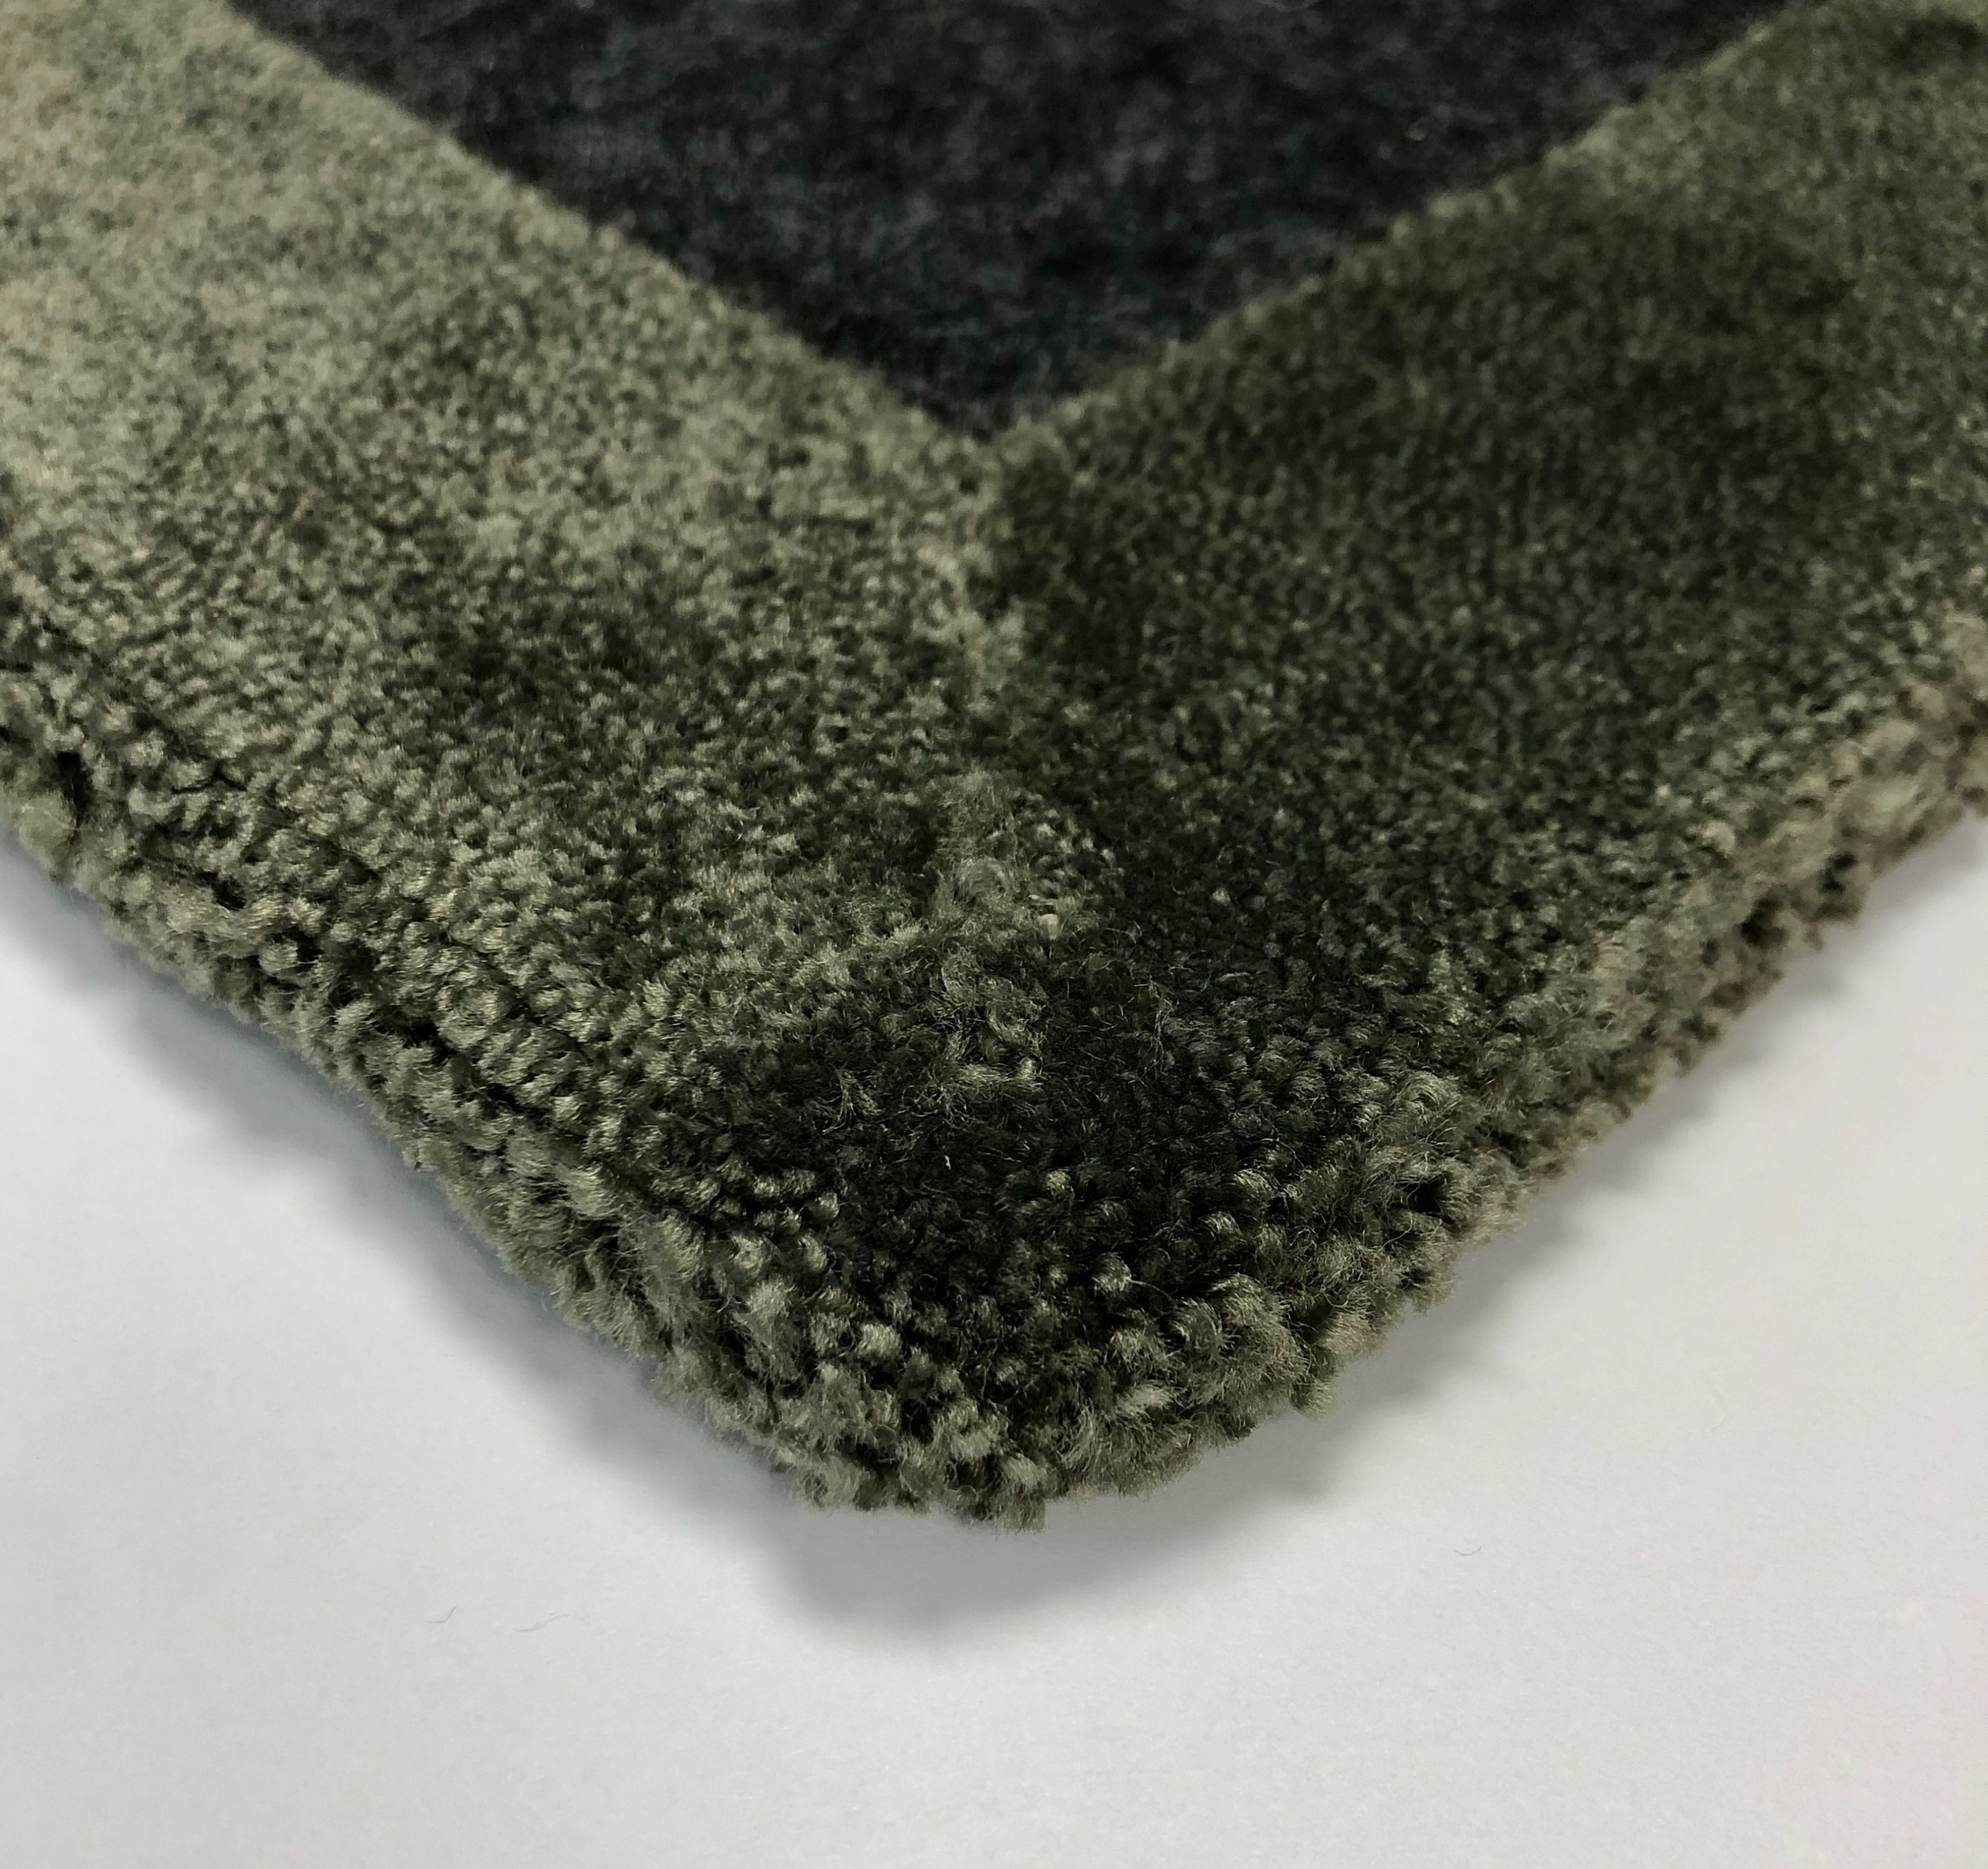 Volume rug 3mm felt backing (backside), exclusive craftsmanship.